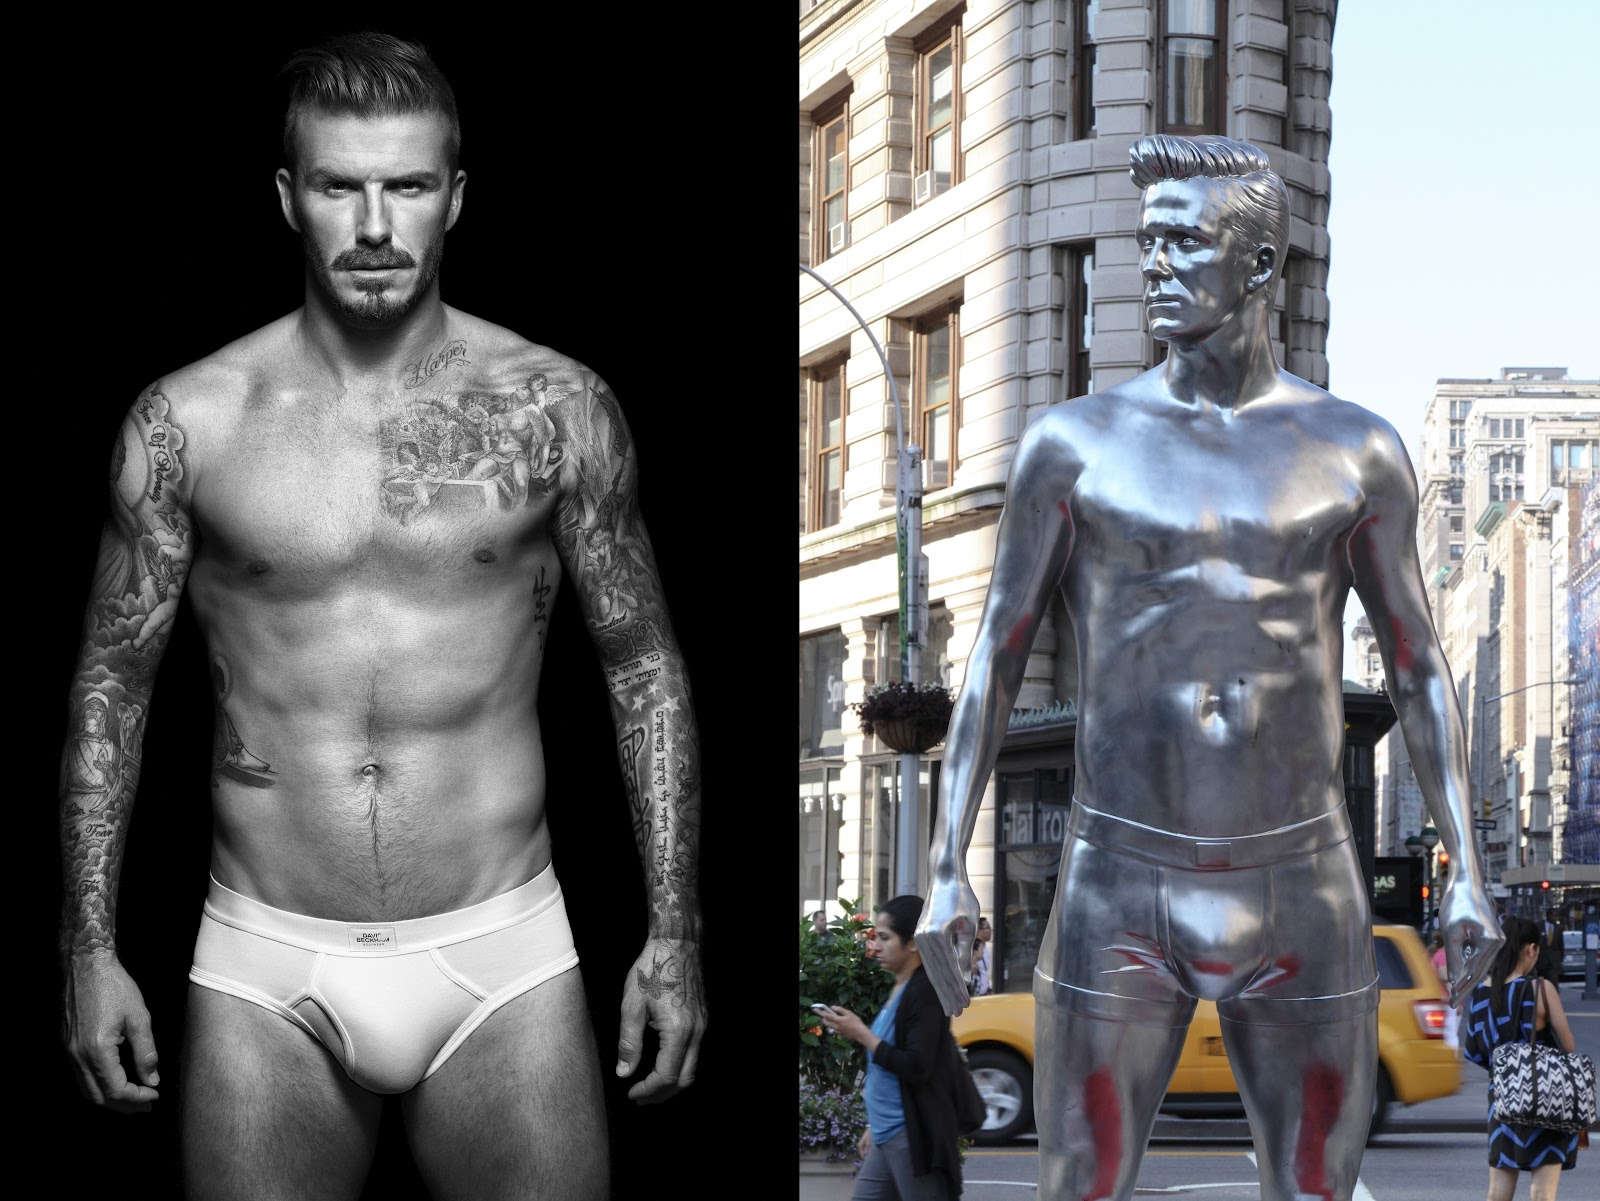 Beckham The man who broke football's gay taboo? - CNN